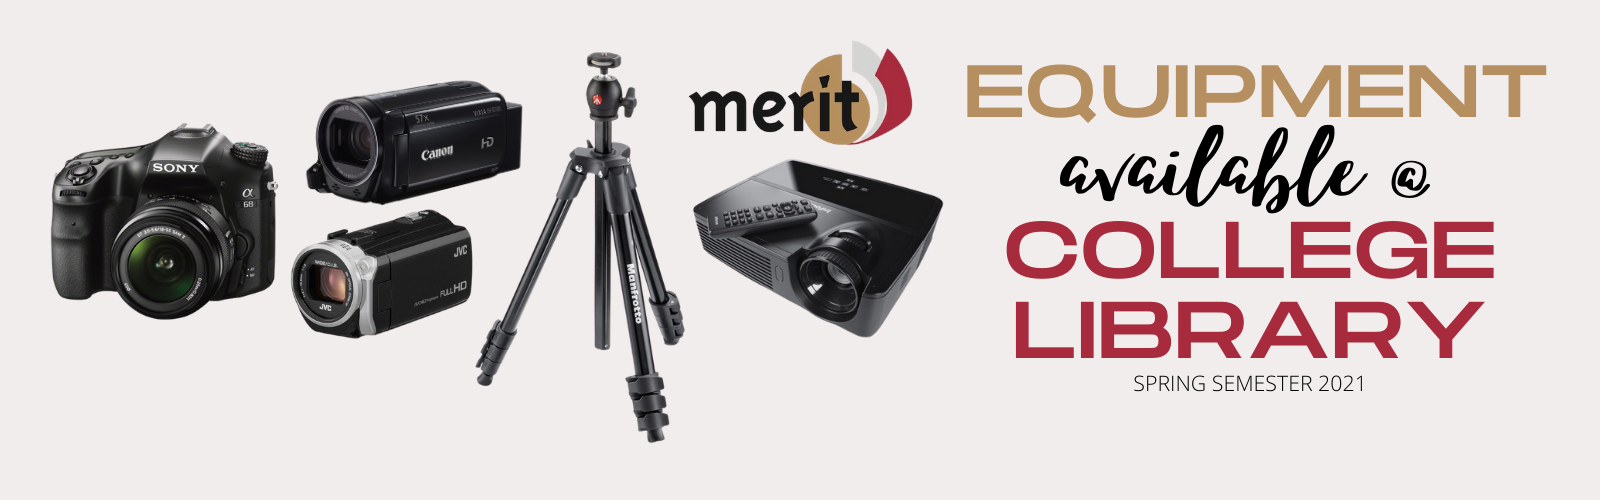 Banner for Merit Equipment with images of a cameras and tripods. Header reads Equipment available at College Library